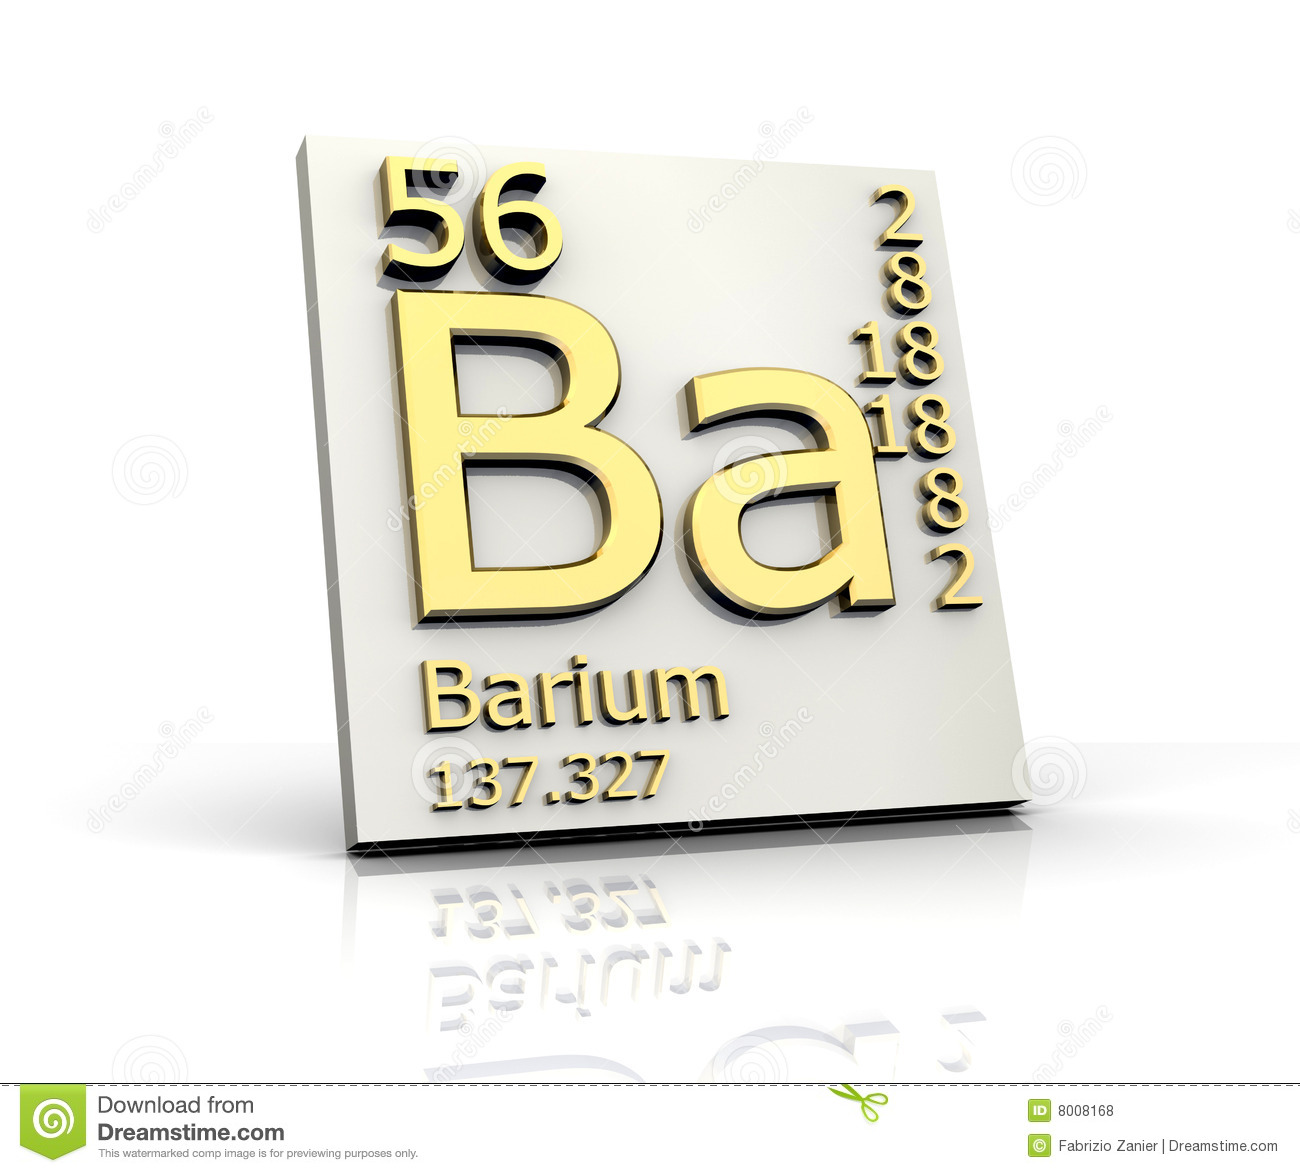 P Periodic Table >> Barium Form Periodic Table Of Elements Stock Illustration - Image: 8008168